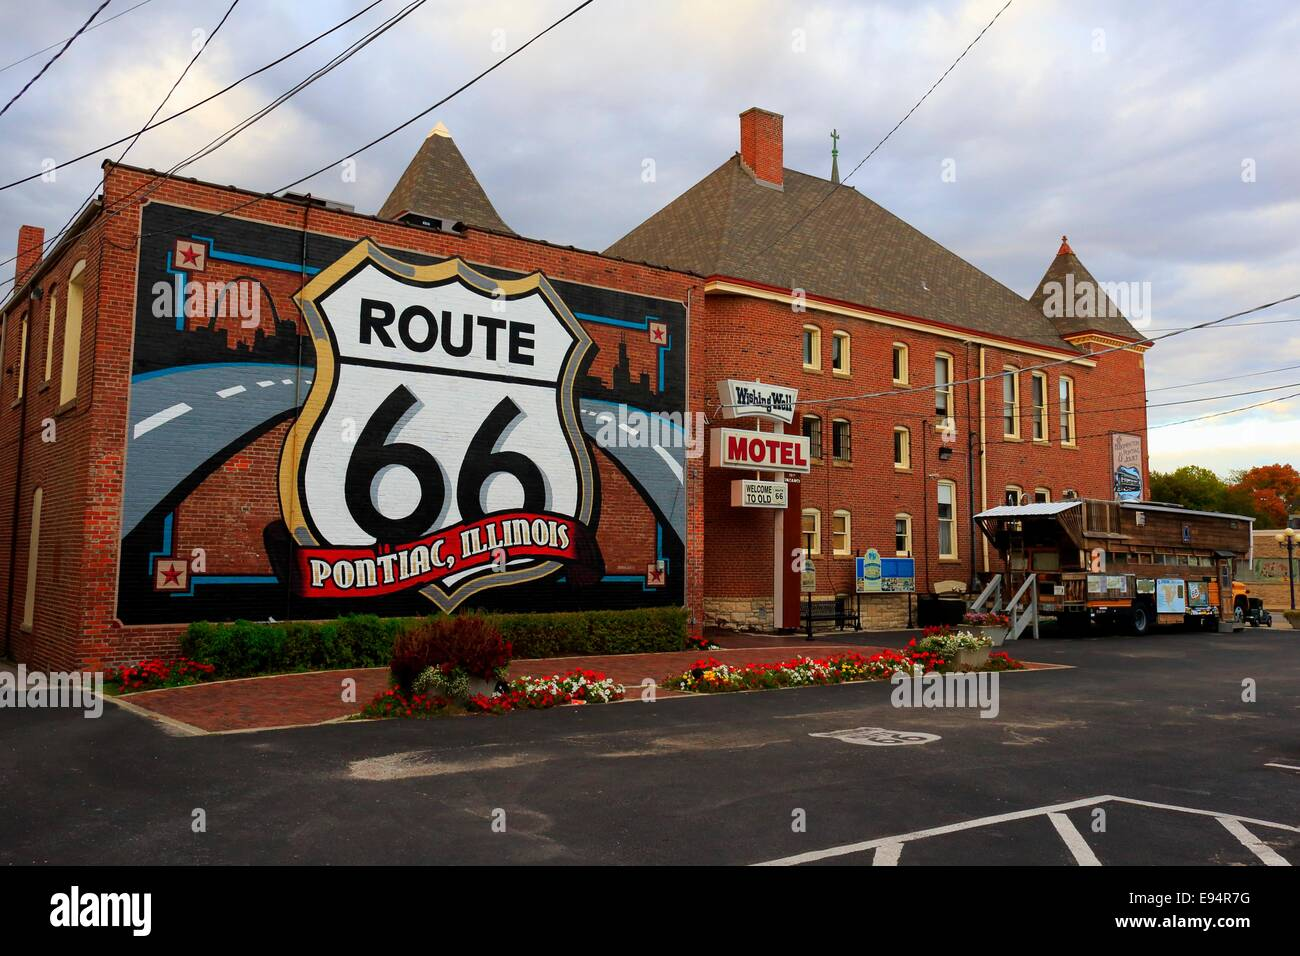 Route 66 Mural Route 66 Museum Pontiac Illinois Stock Photo Royalty Free Image 74479428 Alamy